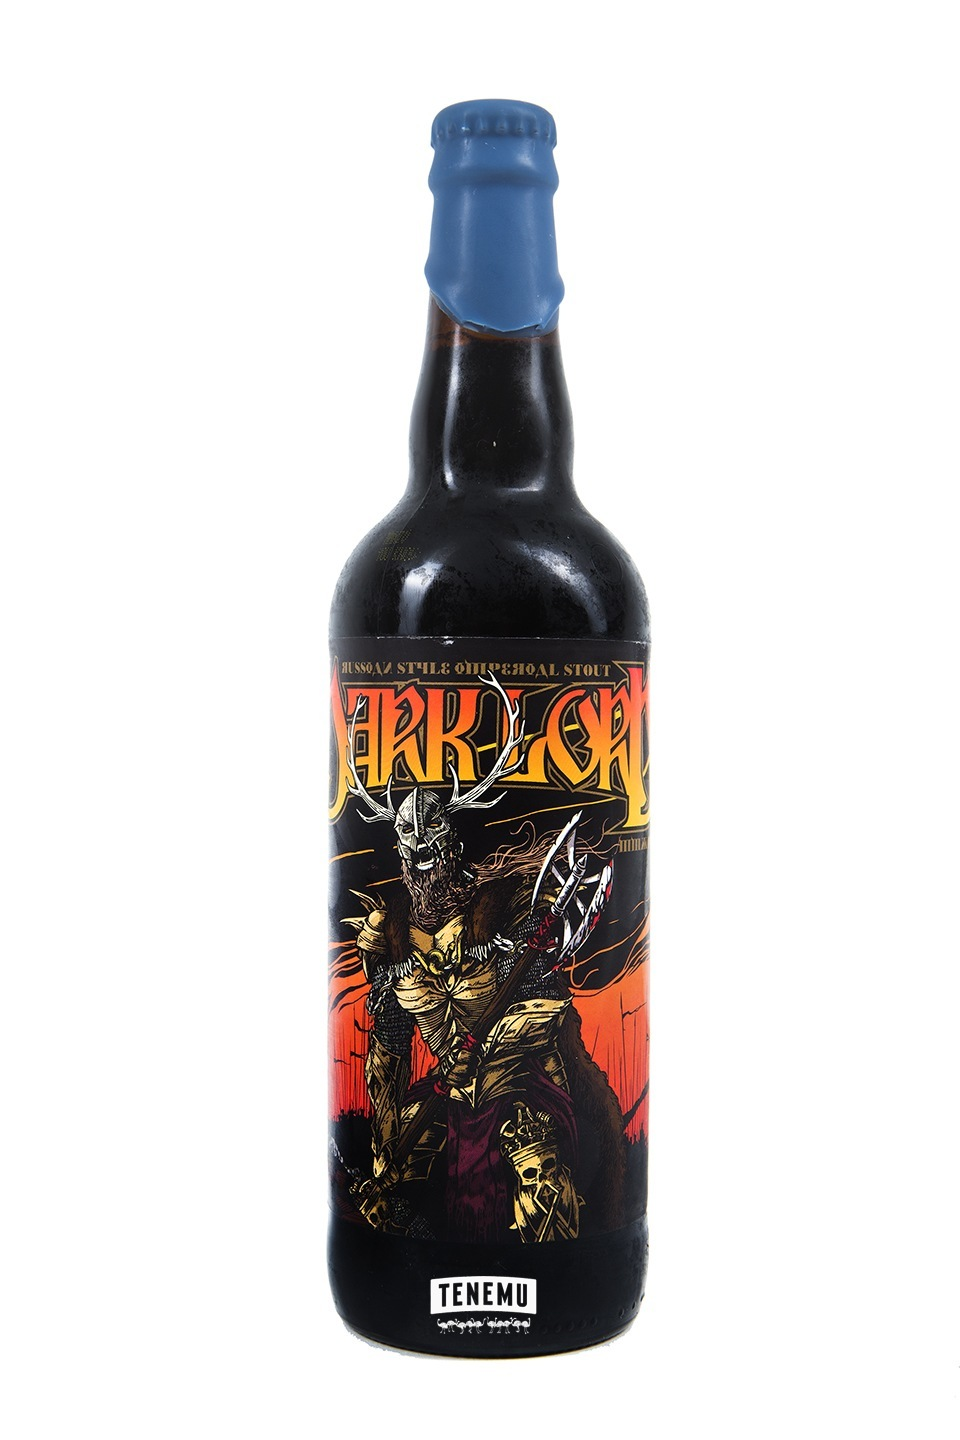 3 Floyds Dark Lord Russian Imperial Stout 2014 Bottle